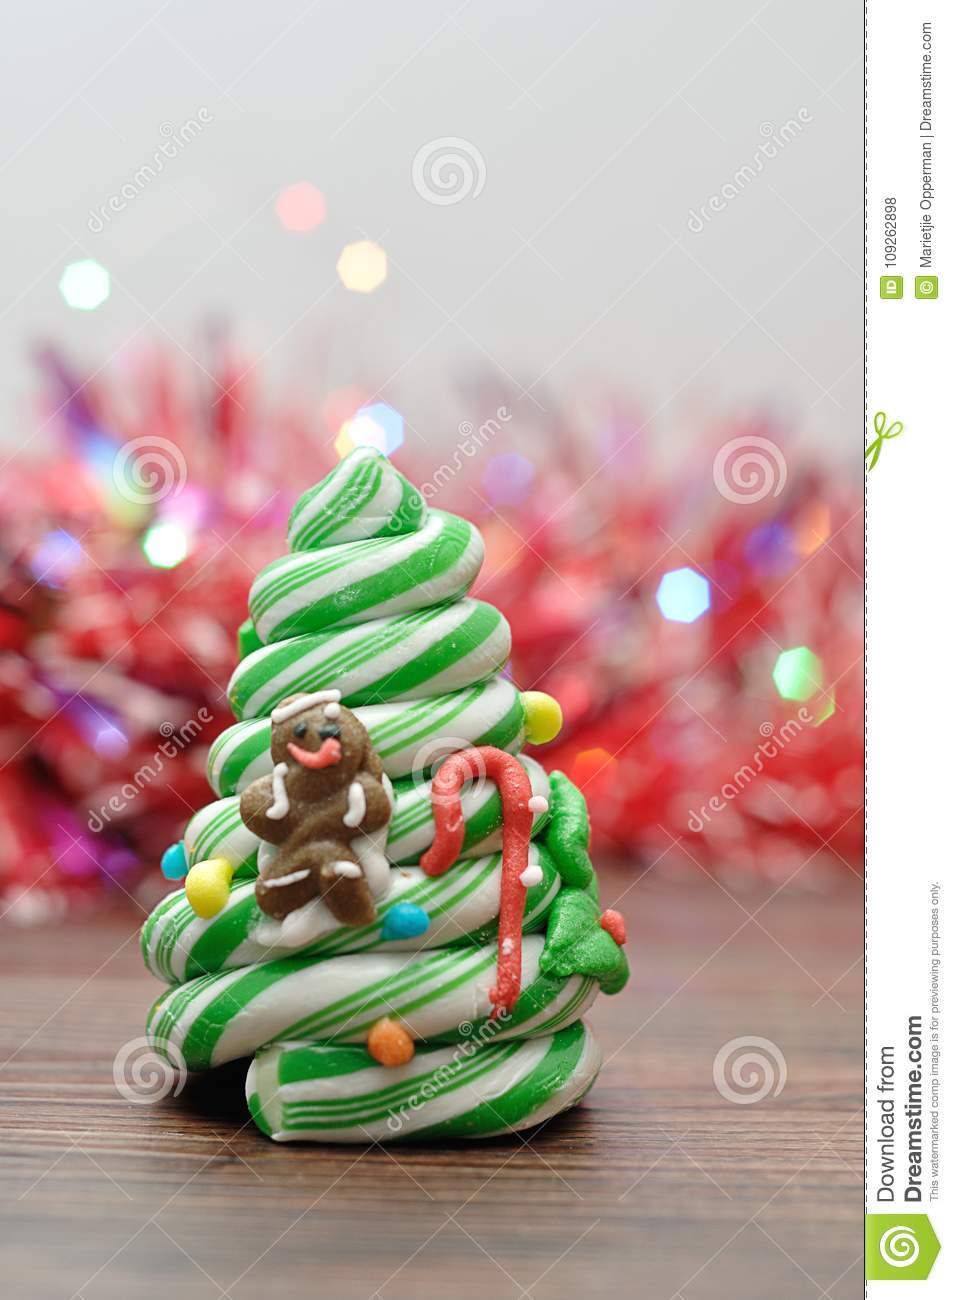 download a candy cane christmas tree with out of focus tinsel and lights stock photo - Candy Cane Christmas Tree